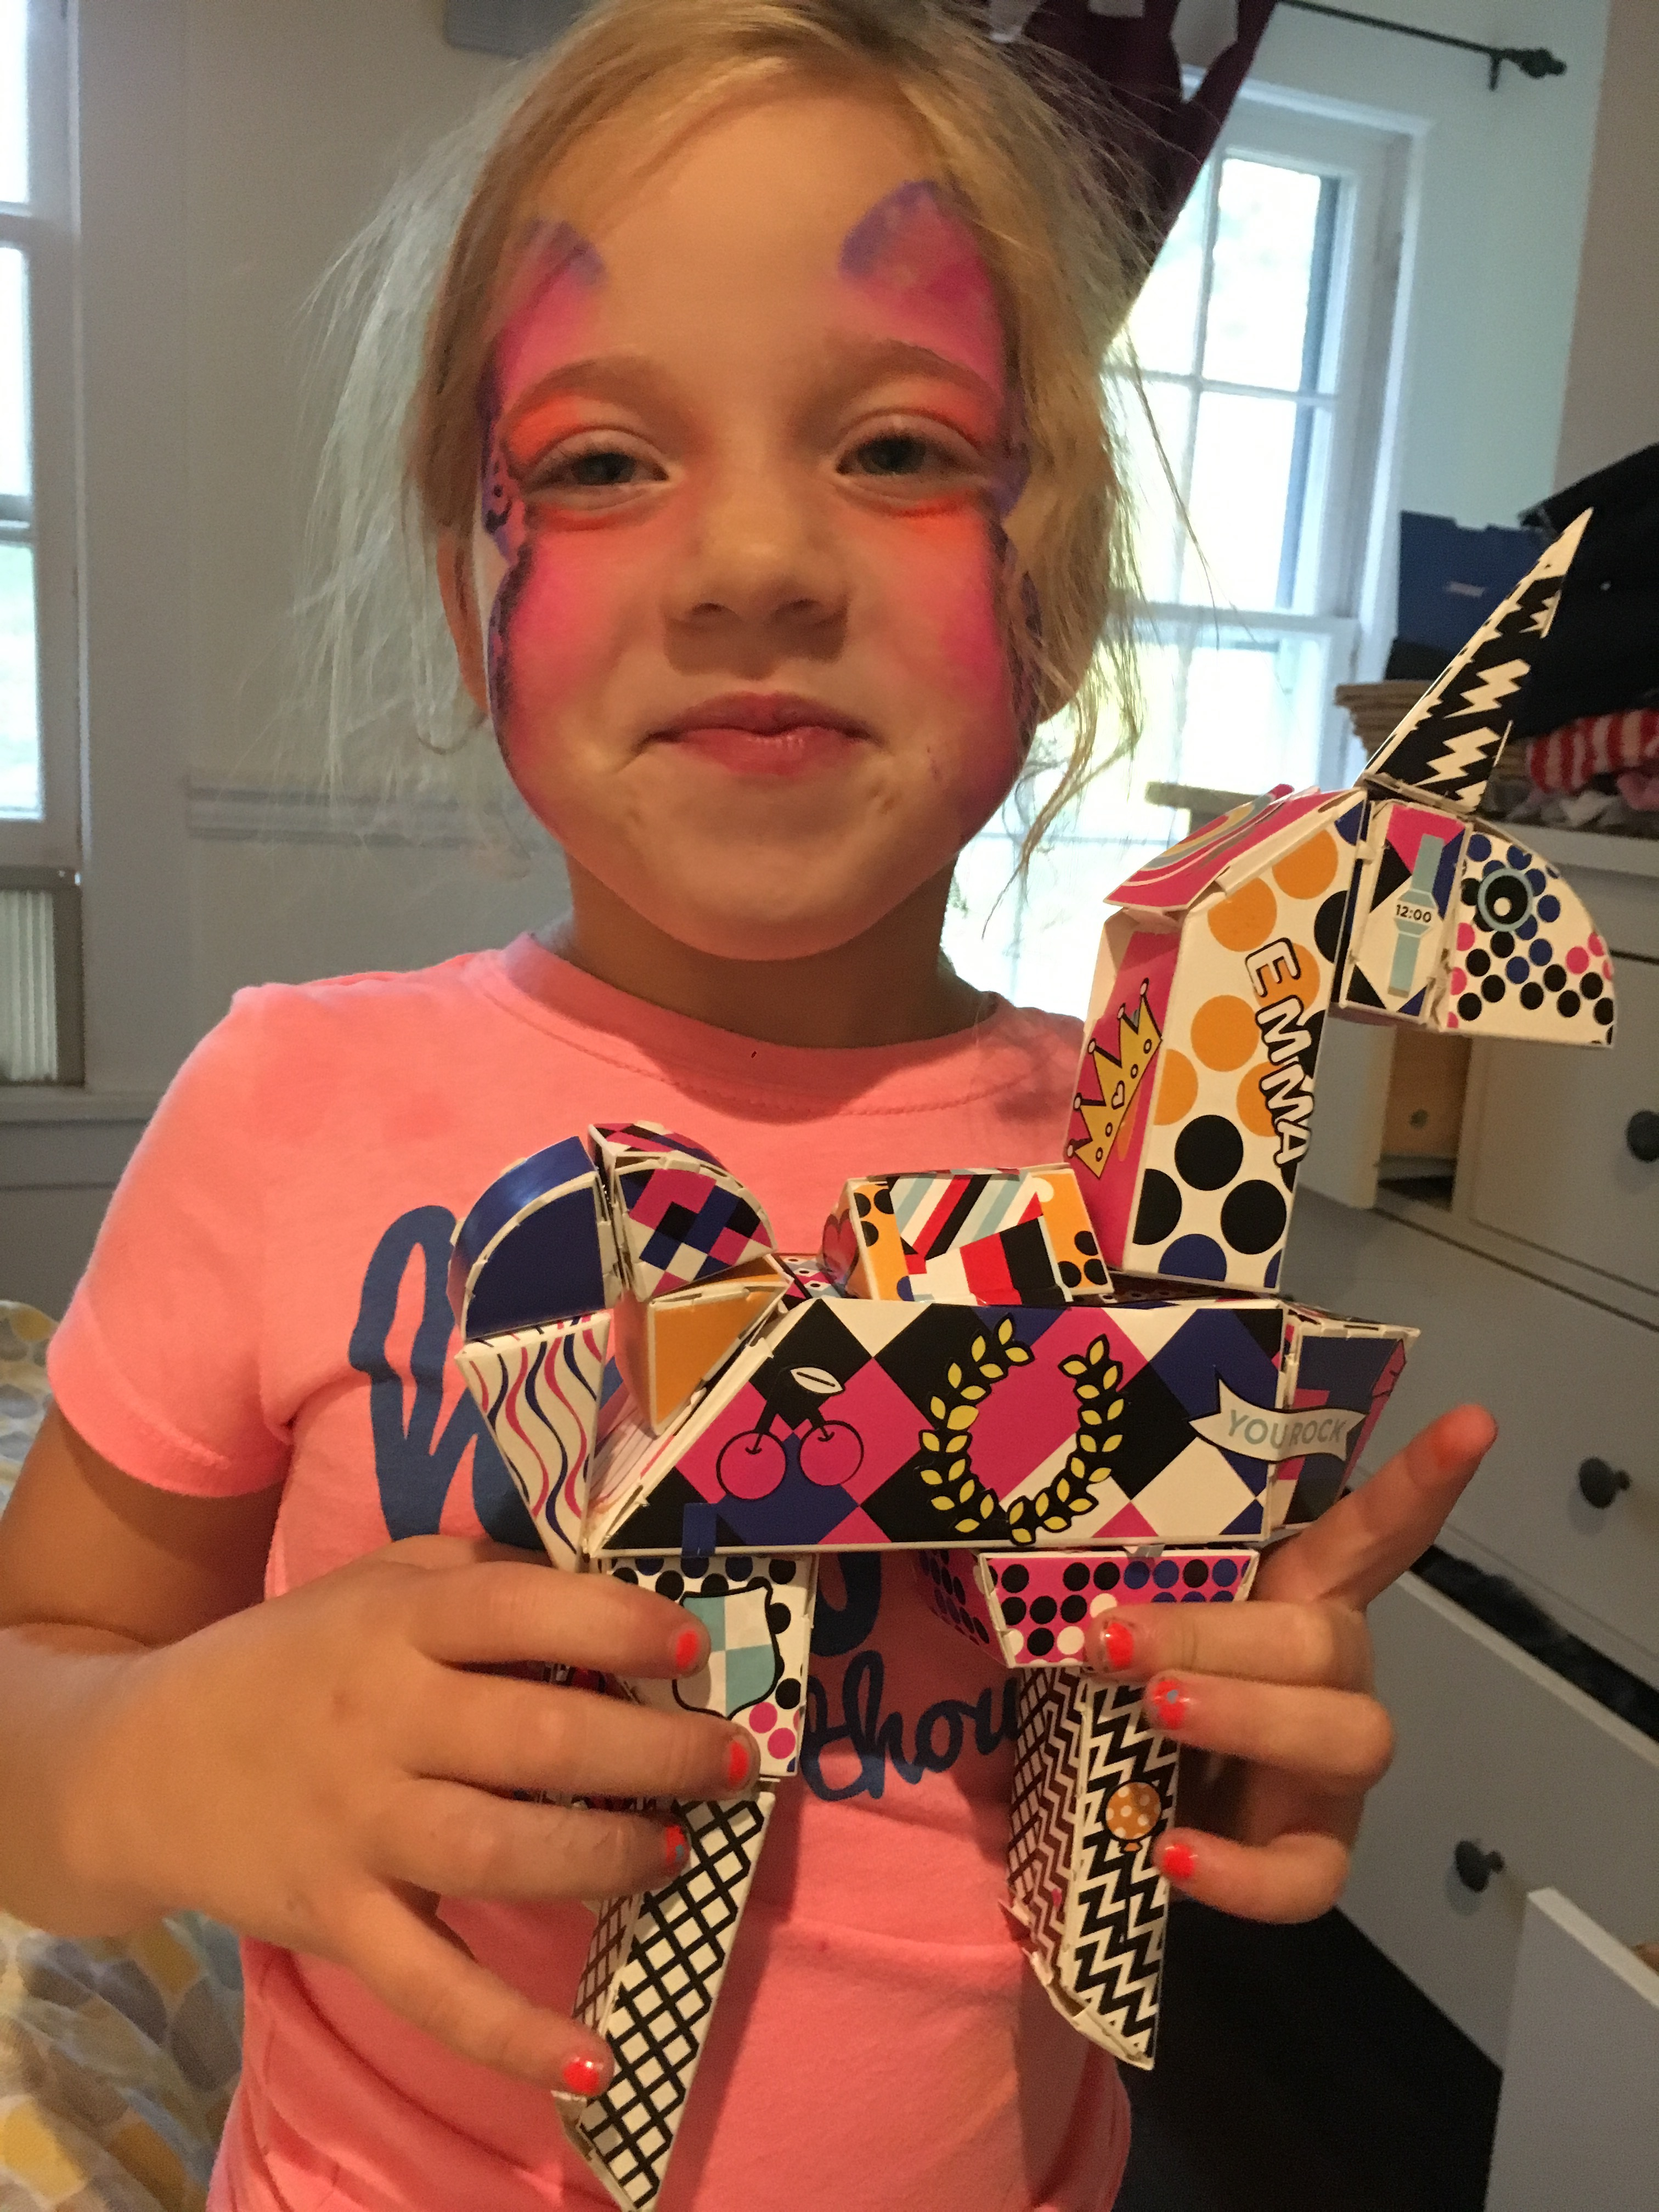 Serious Paper Fun with Paper Punk